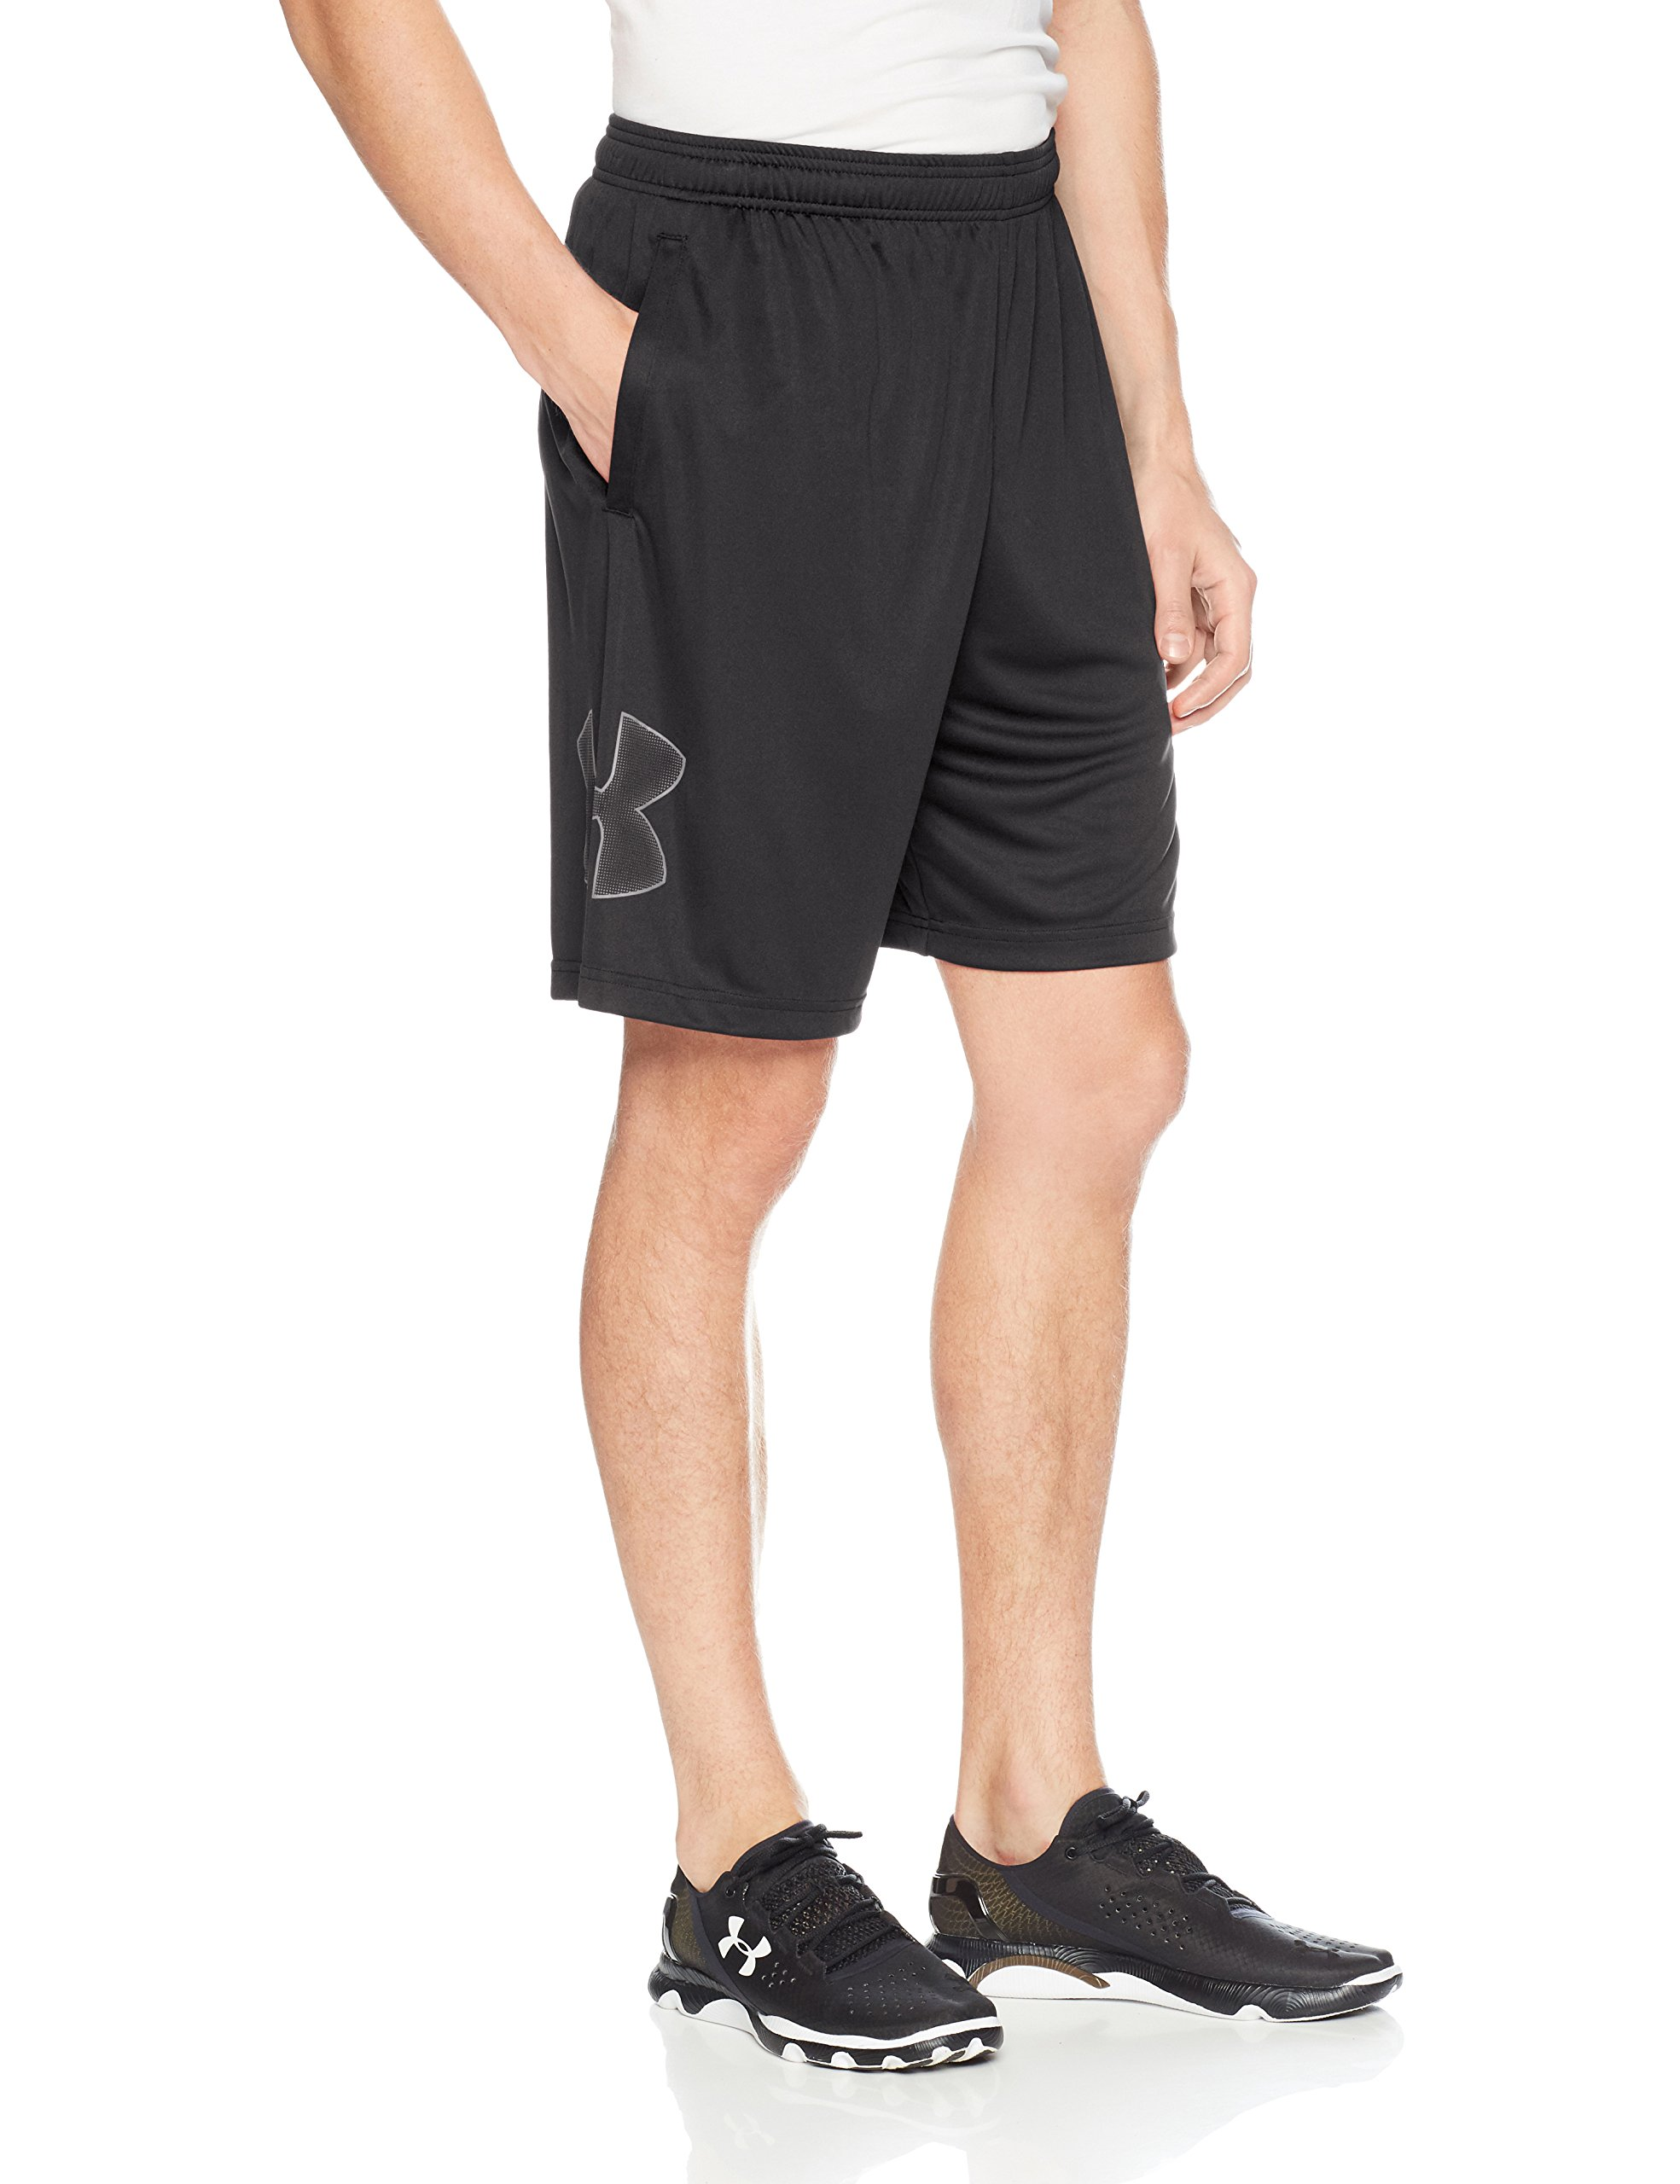 Under Armour Men's Tech Graphic Shorts, Black (001)/Graphite, Large by Under Armour